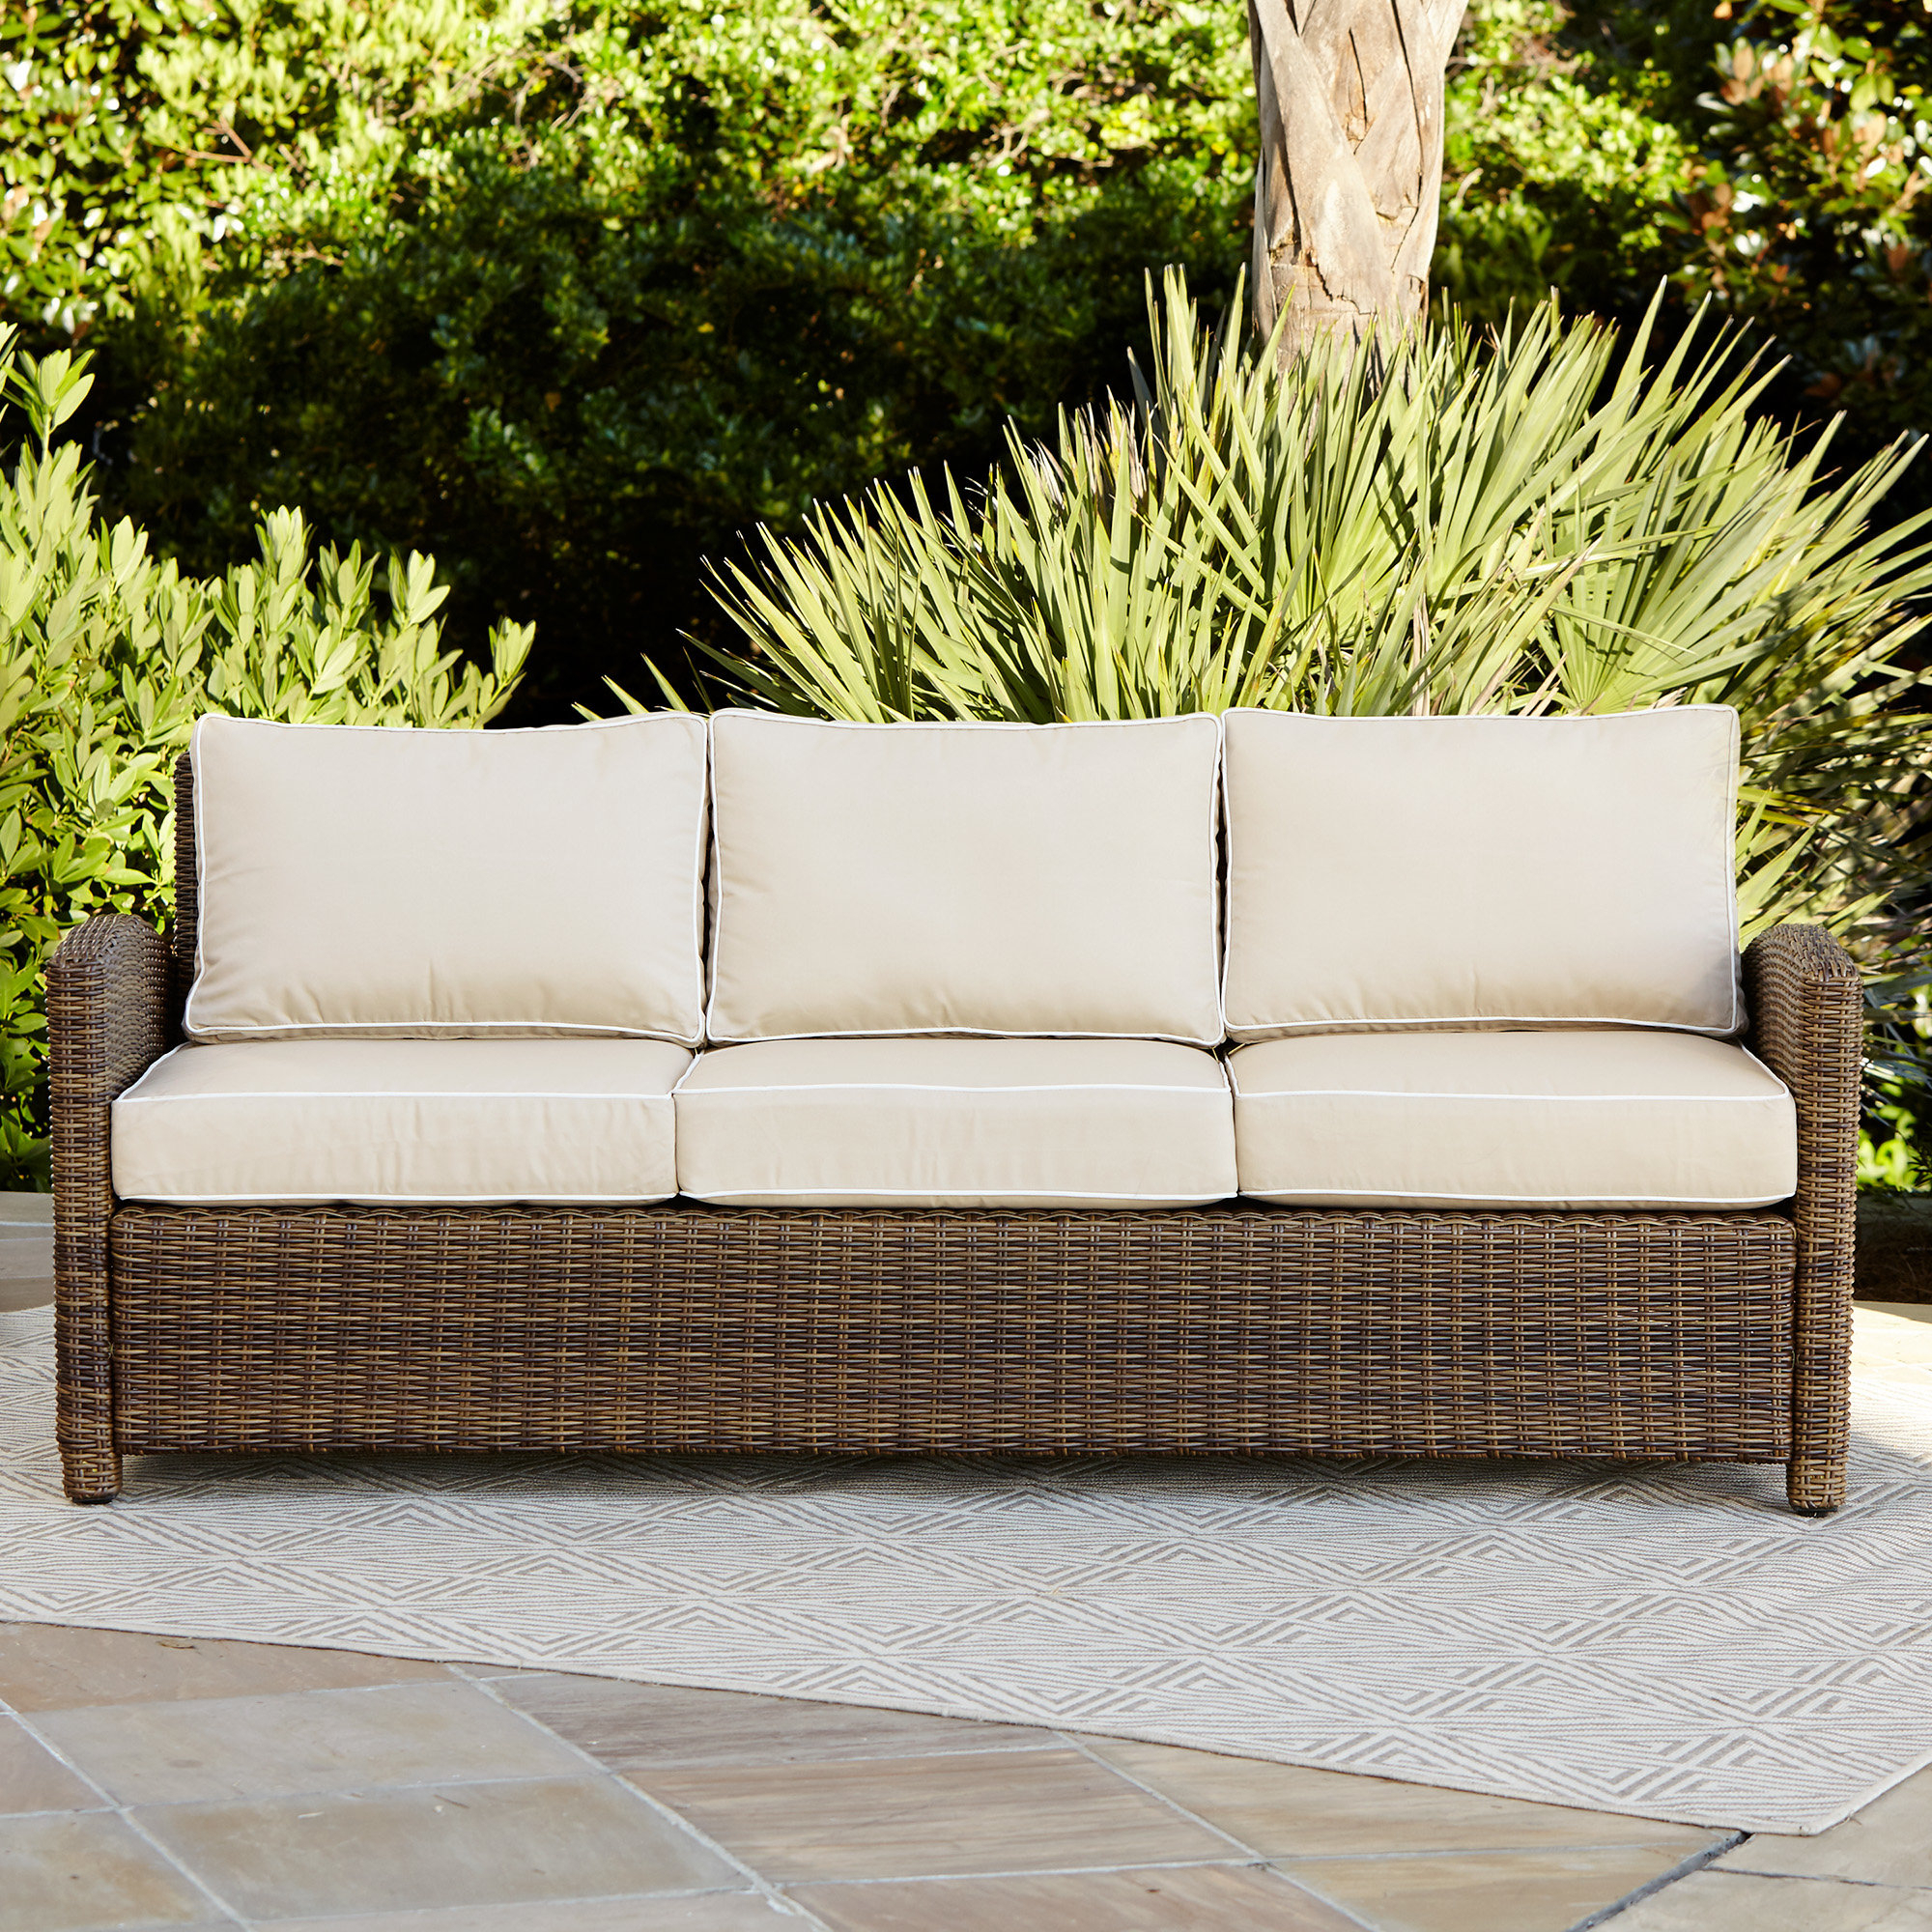 2020 Mcmanis Patio Sofas With Cushion With Regard To Lawson Patio Sofa With Cushions (Gallery 14 of 20)